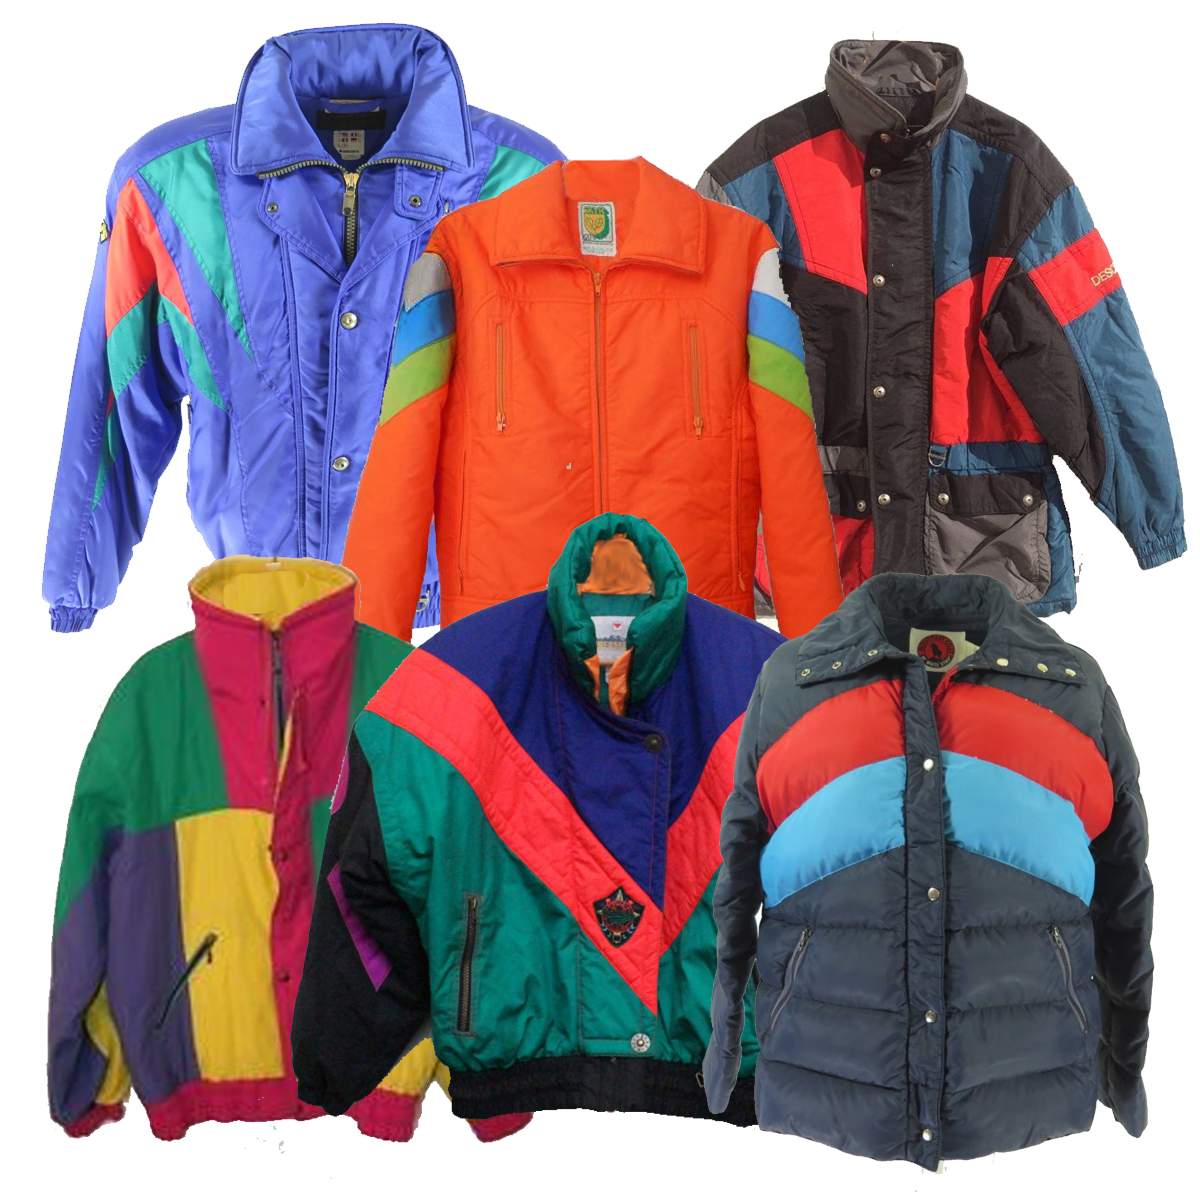 Wholesale Vintage Ski Jackets Dust Factory Vintage